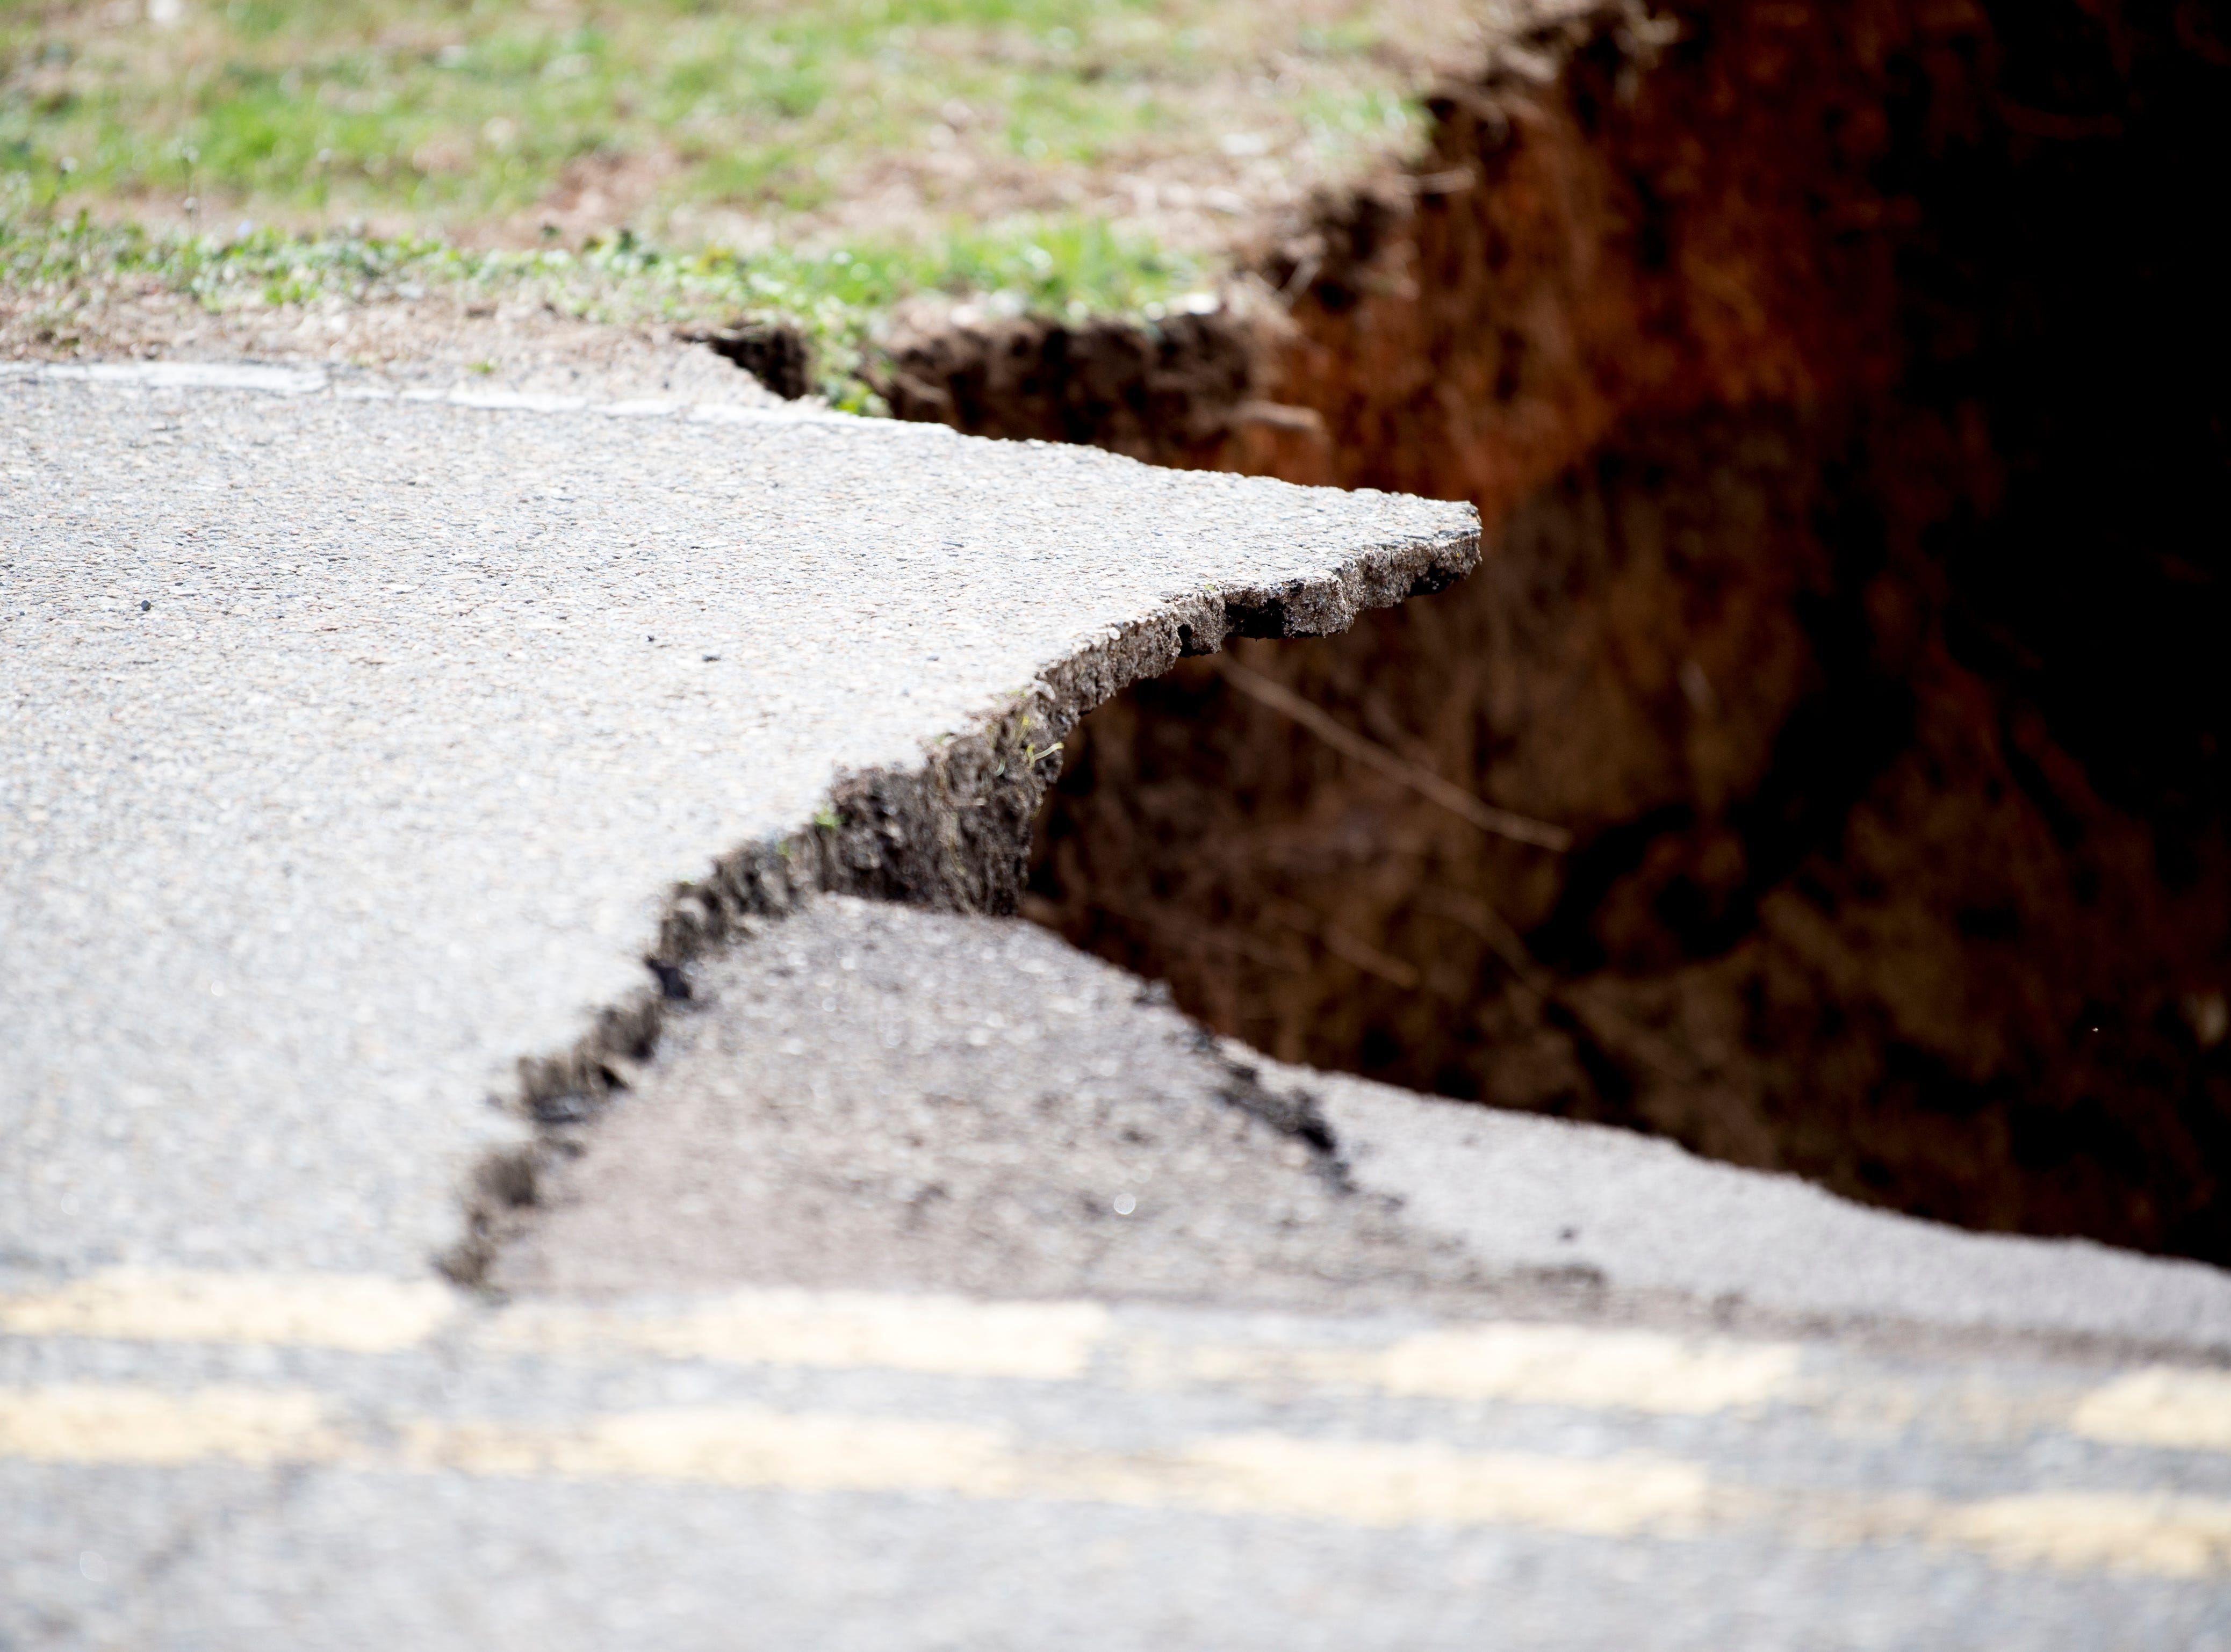 A chunk of the road can be seen swallowed up by a large sinkhole on Greenwell Road in Powell, Tennessee on Tuesday, February 26, 2019. The sinkhole is estimated to be around 20 feet deep.